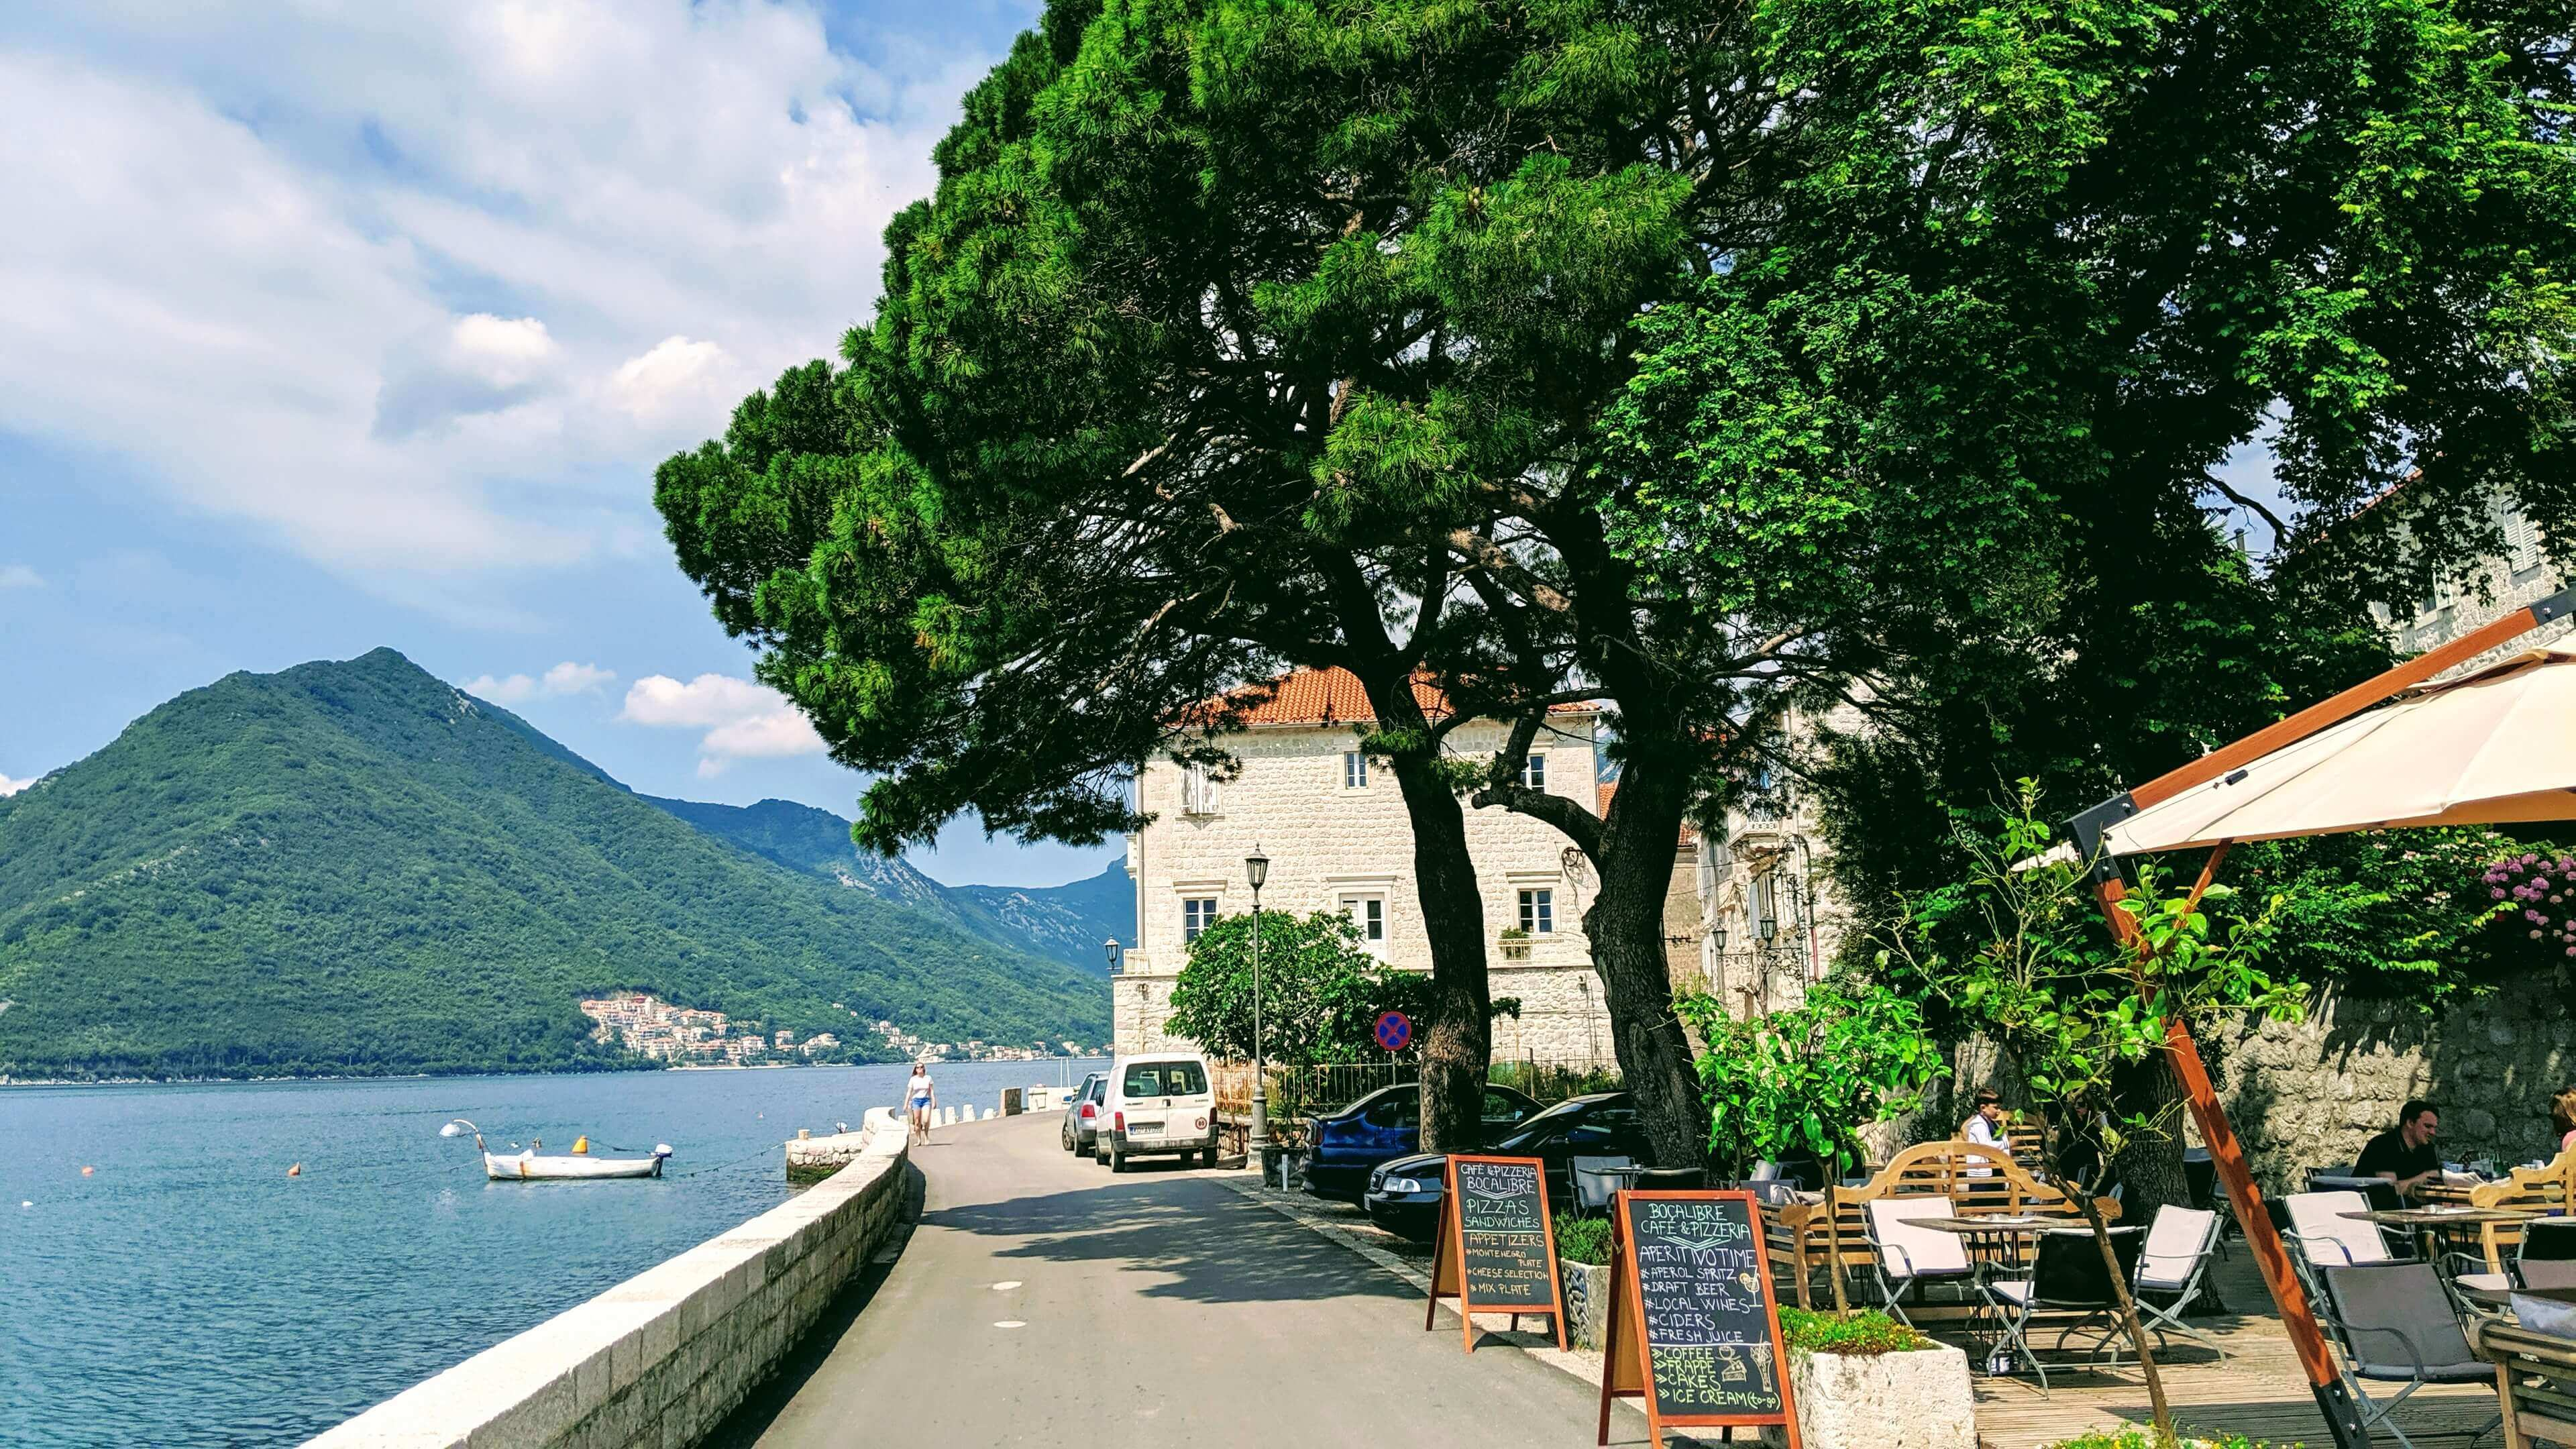 Things to see and do in Kotor: The Boardwalk in Perast.